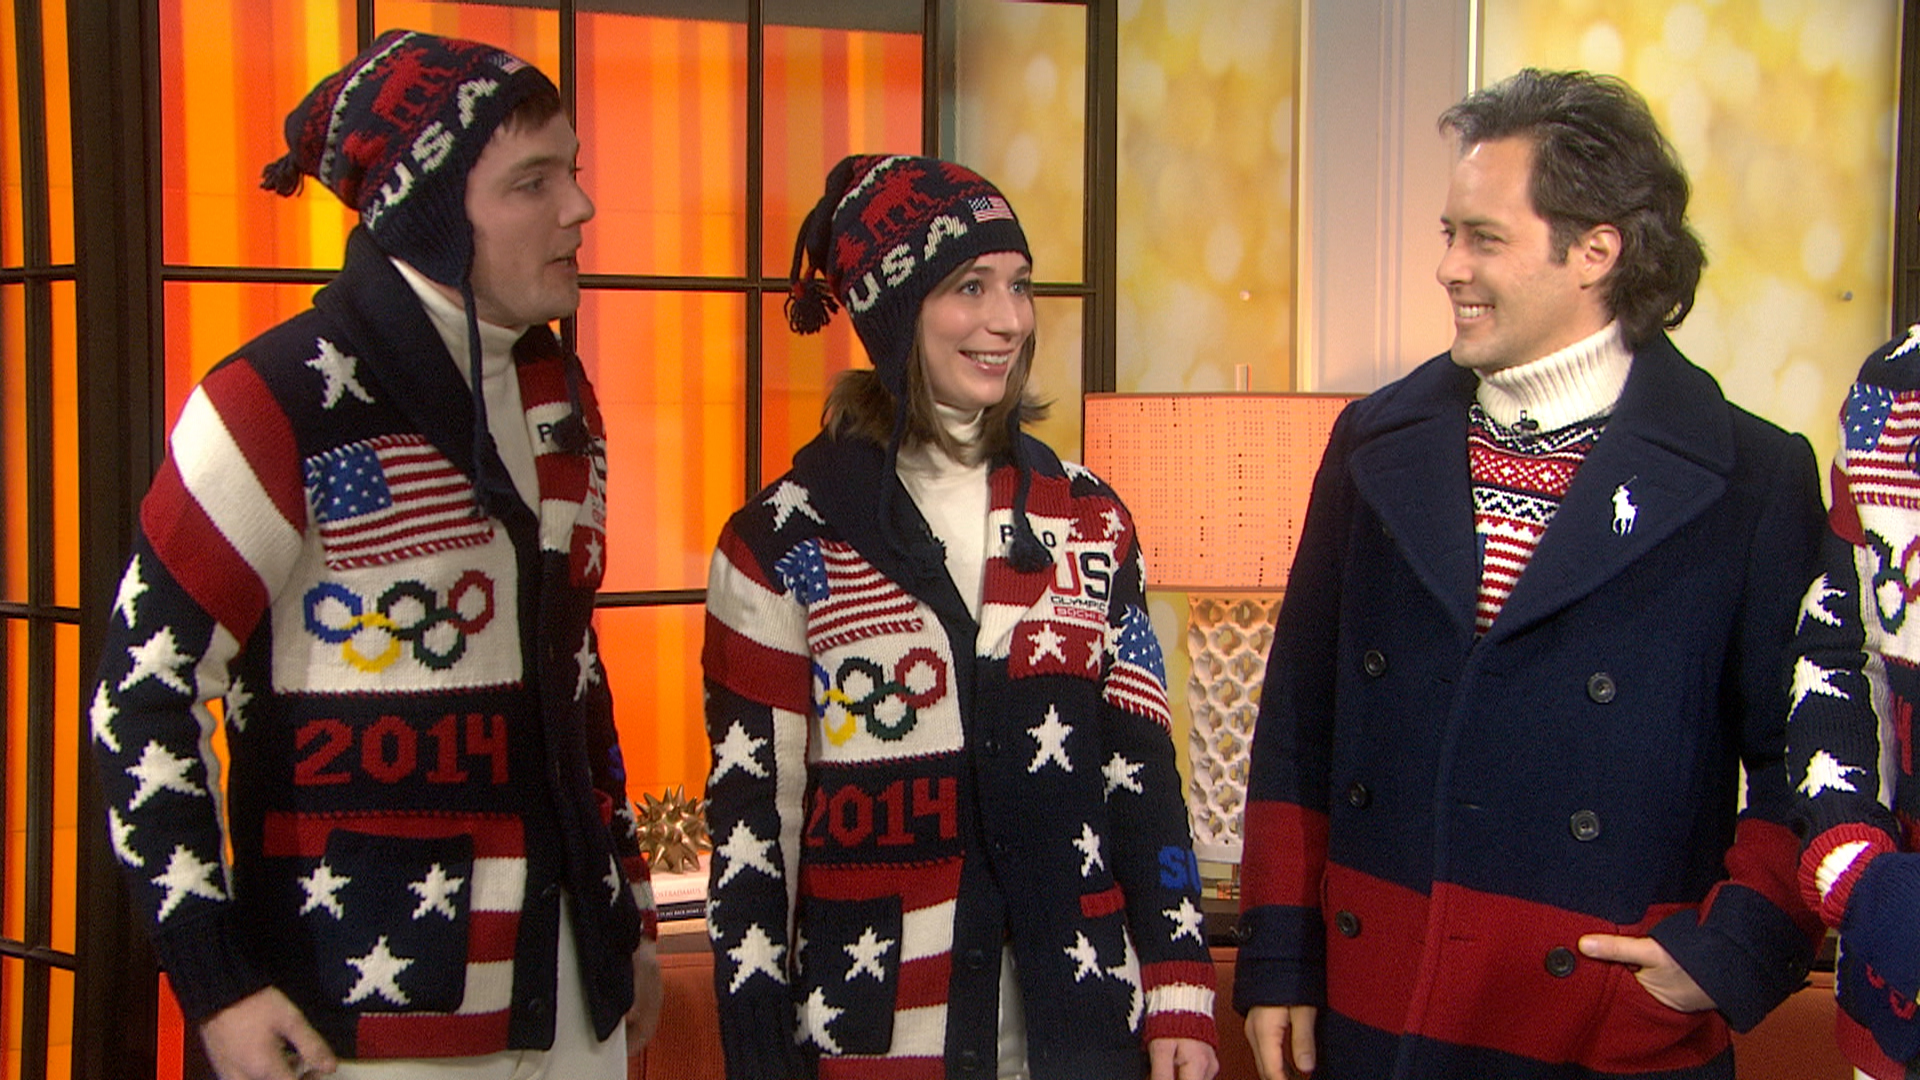 Patriotic style: Team USA reveals Olympic Opening Ceremony ...